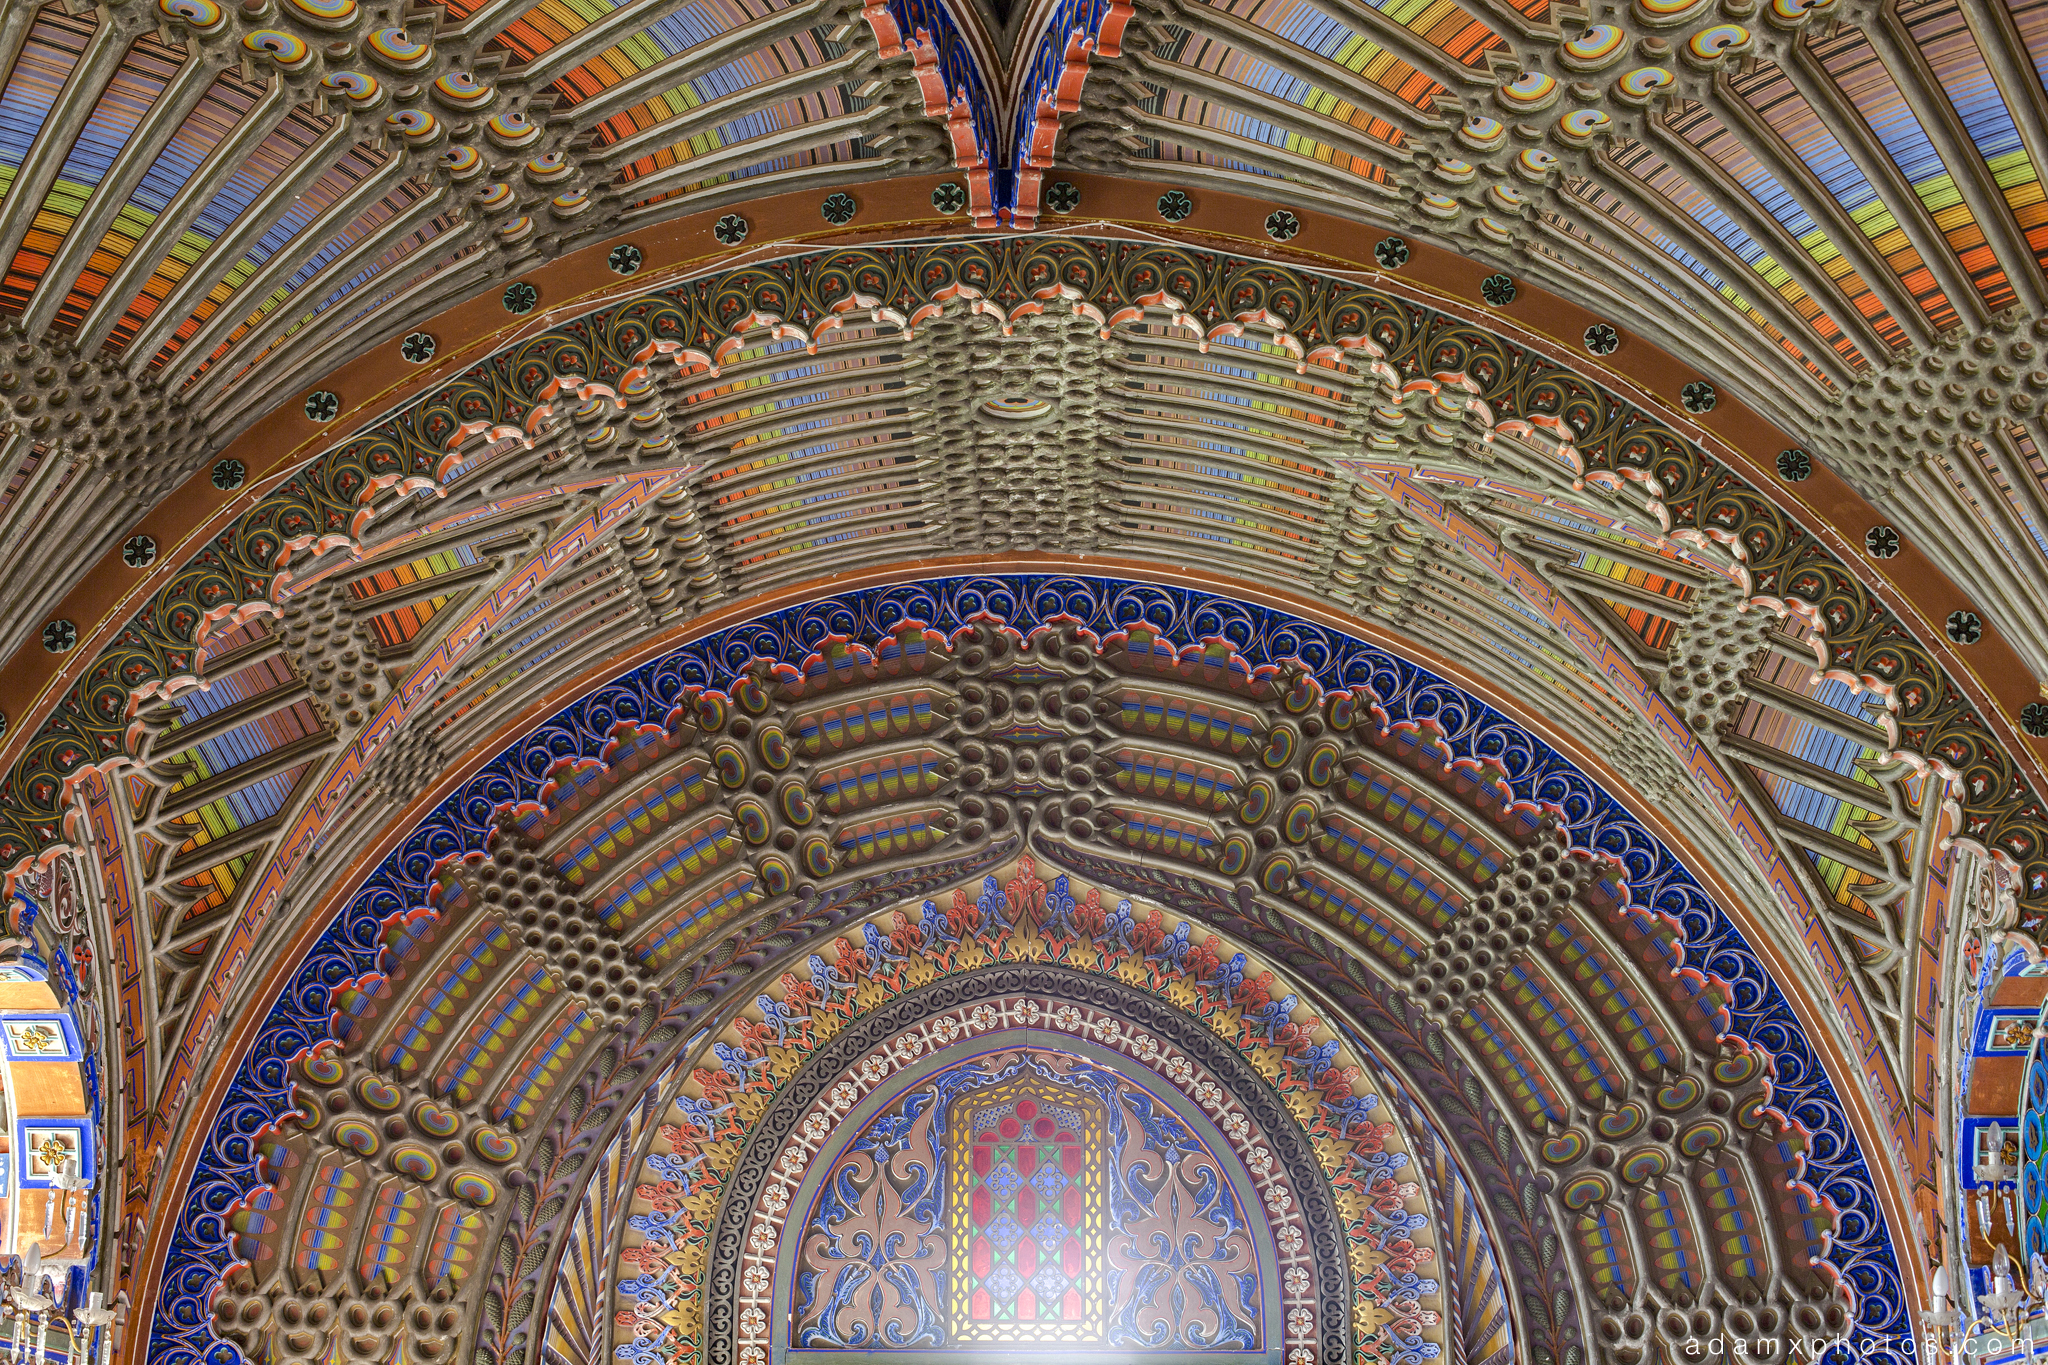 Peacock Room detail ceiling tiles colours Non Plus Ultra Fairytale Castle of Sammezzano Castello di Sammezzano Urbex Adam X Urban Exploration photo photos report decay detail UE abandoned Ornate Moorish tiling tiled derelict unused empty disused decay decayed decaying grimy grime